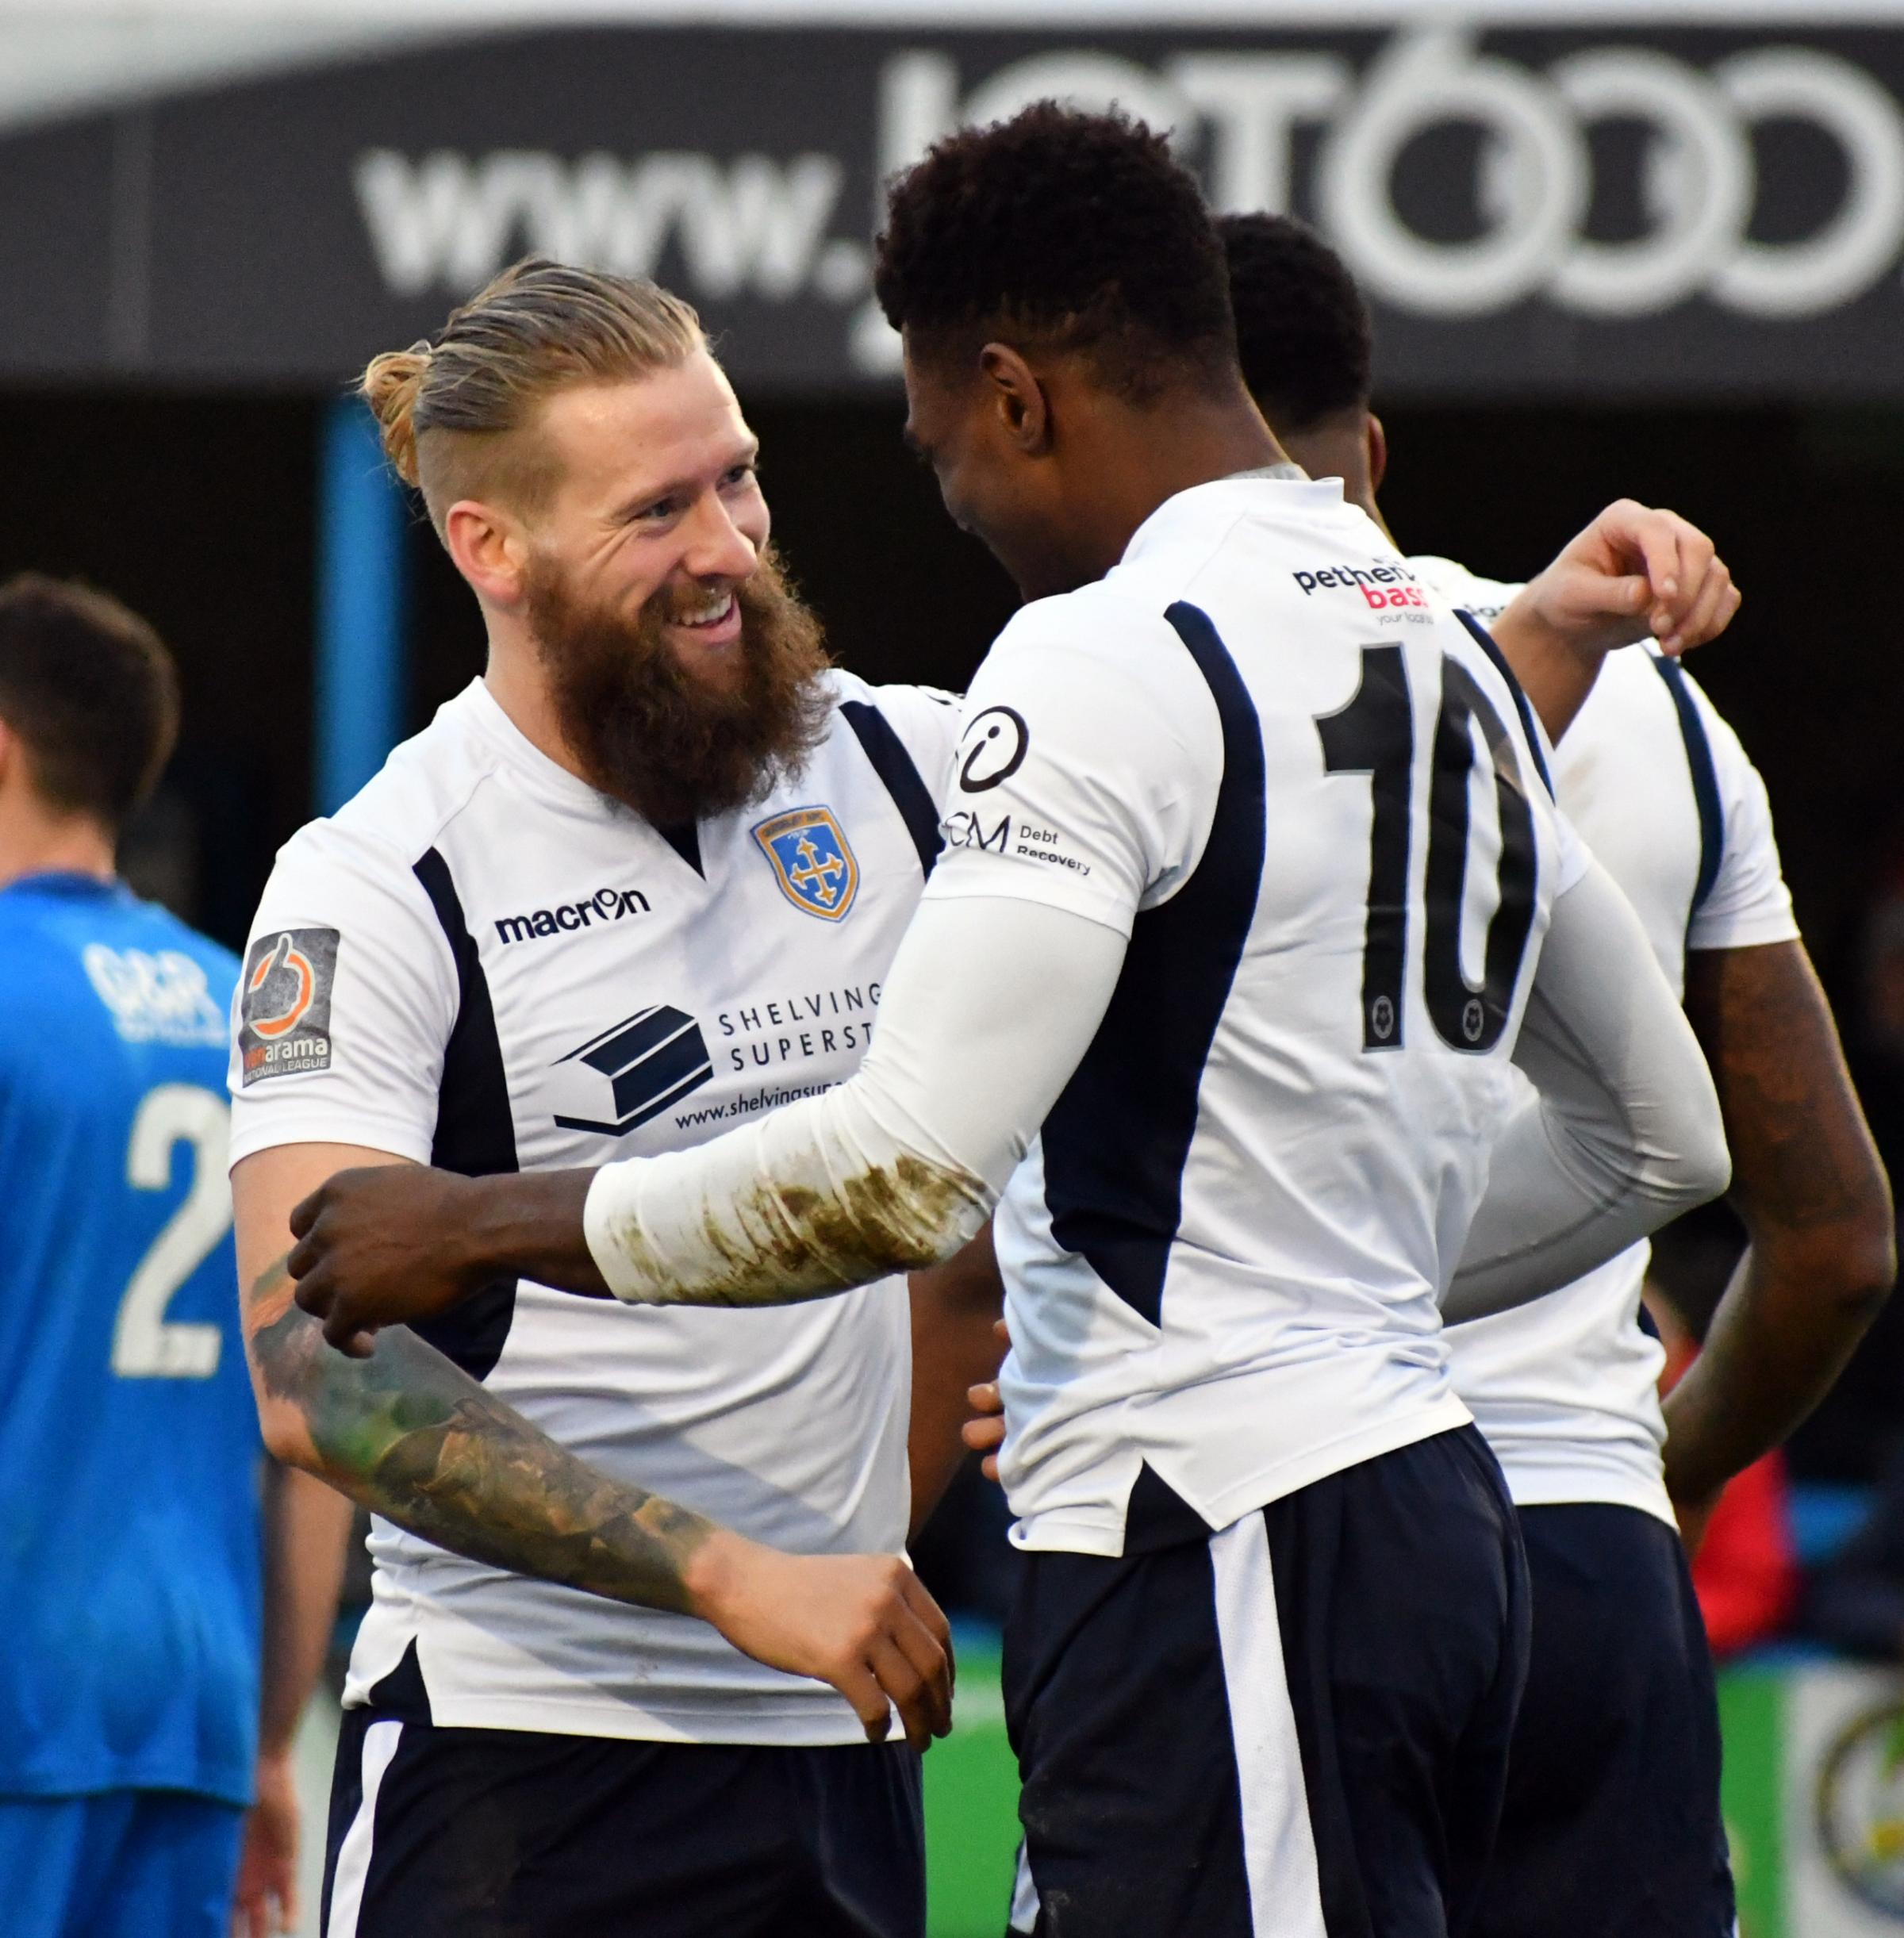 Goalscorer Kayode Odejayi is congratulated by Guiseley team-mate Alex Purver in their side's 1-1 draw with Leamington at Nethermoor in Vanarama National League North on Saturday. Picture: Richard Leach